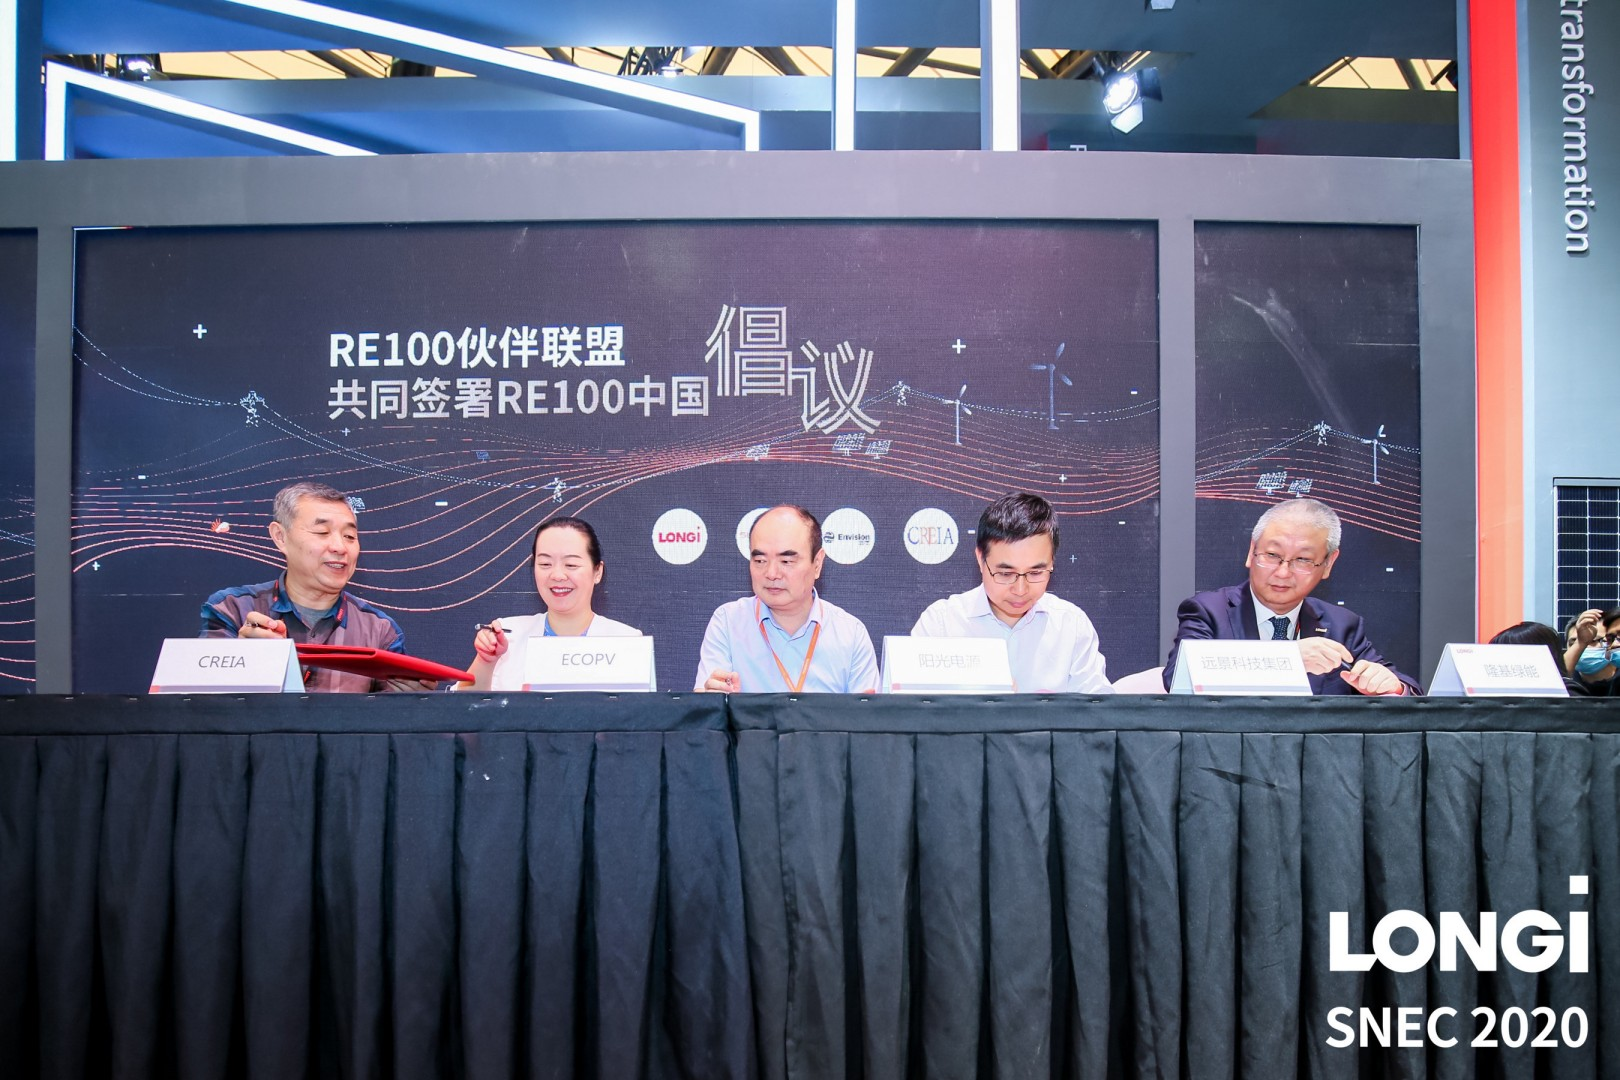 LONGi was also among the companies to join the RE100 China initiative, announced at SNEC last weekend. Image: LONGi Solar.